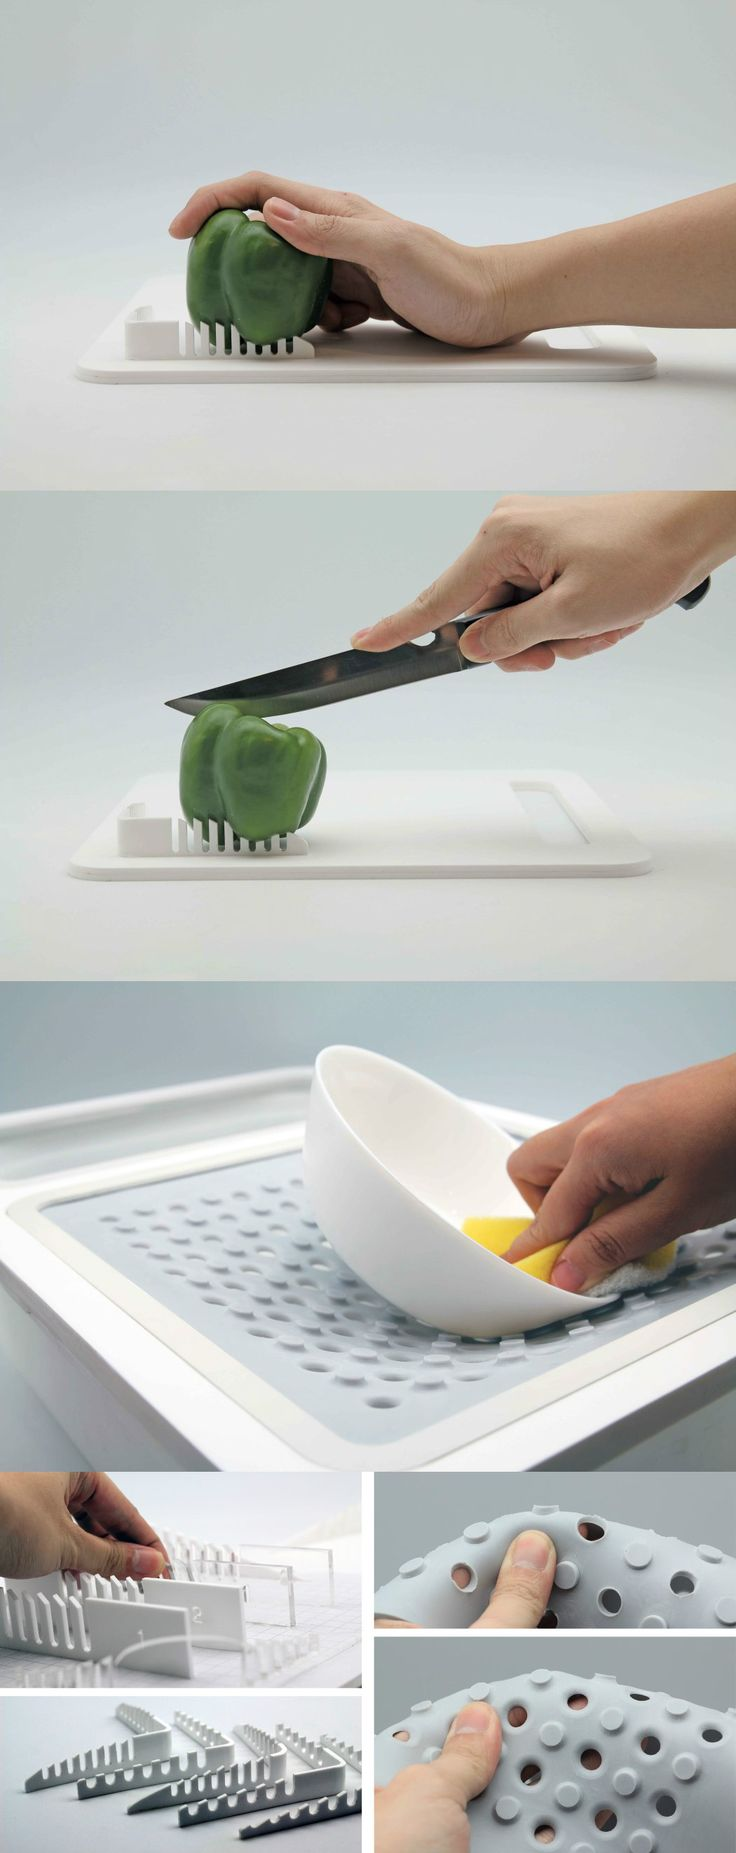 Oneware is a set of kitchen apparatuses for one-handed people who still want to or need to cook | Read Full Story at Yanko Design